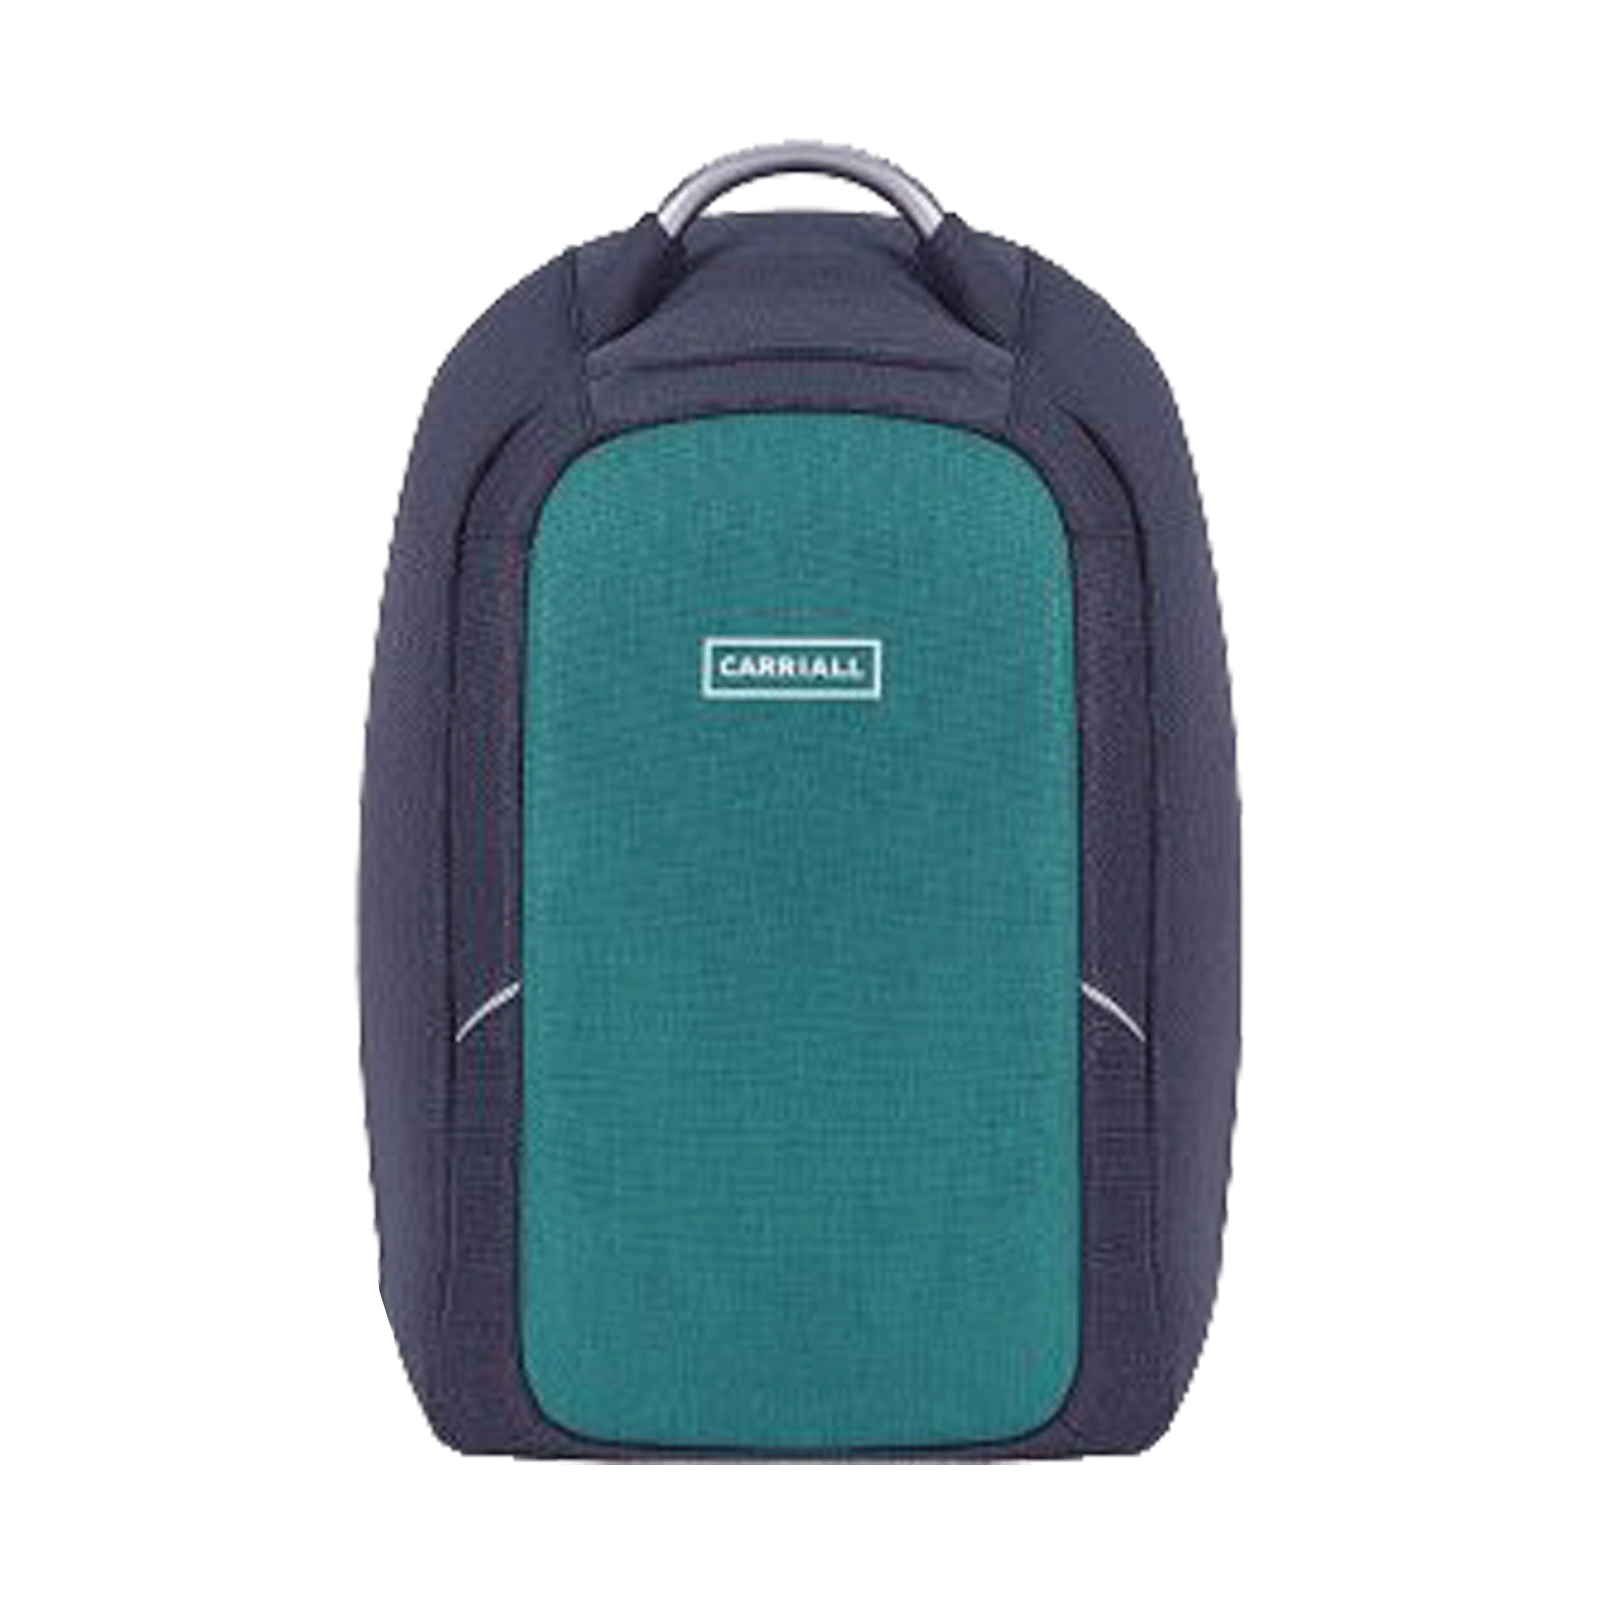 Carriall Columbus 22.4 Litres Anti-cut and Water Resistant Fabric Bagpack for Laptop (Anti-Theft Design, CABK0002, Green)_1